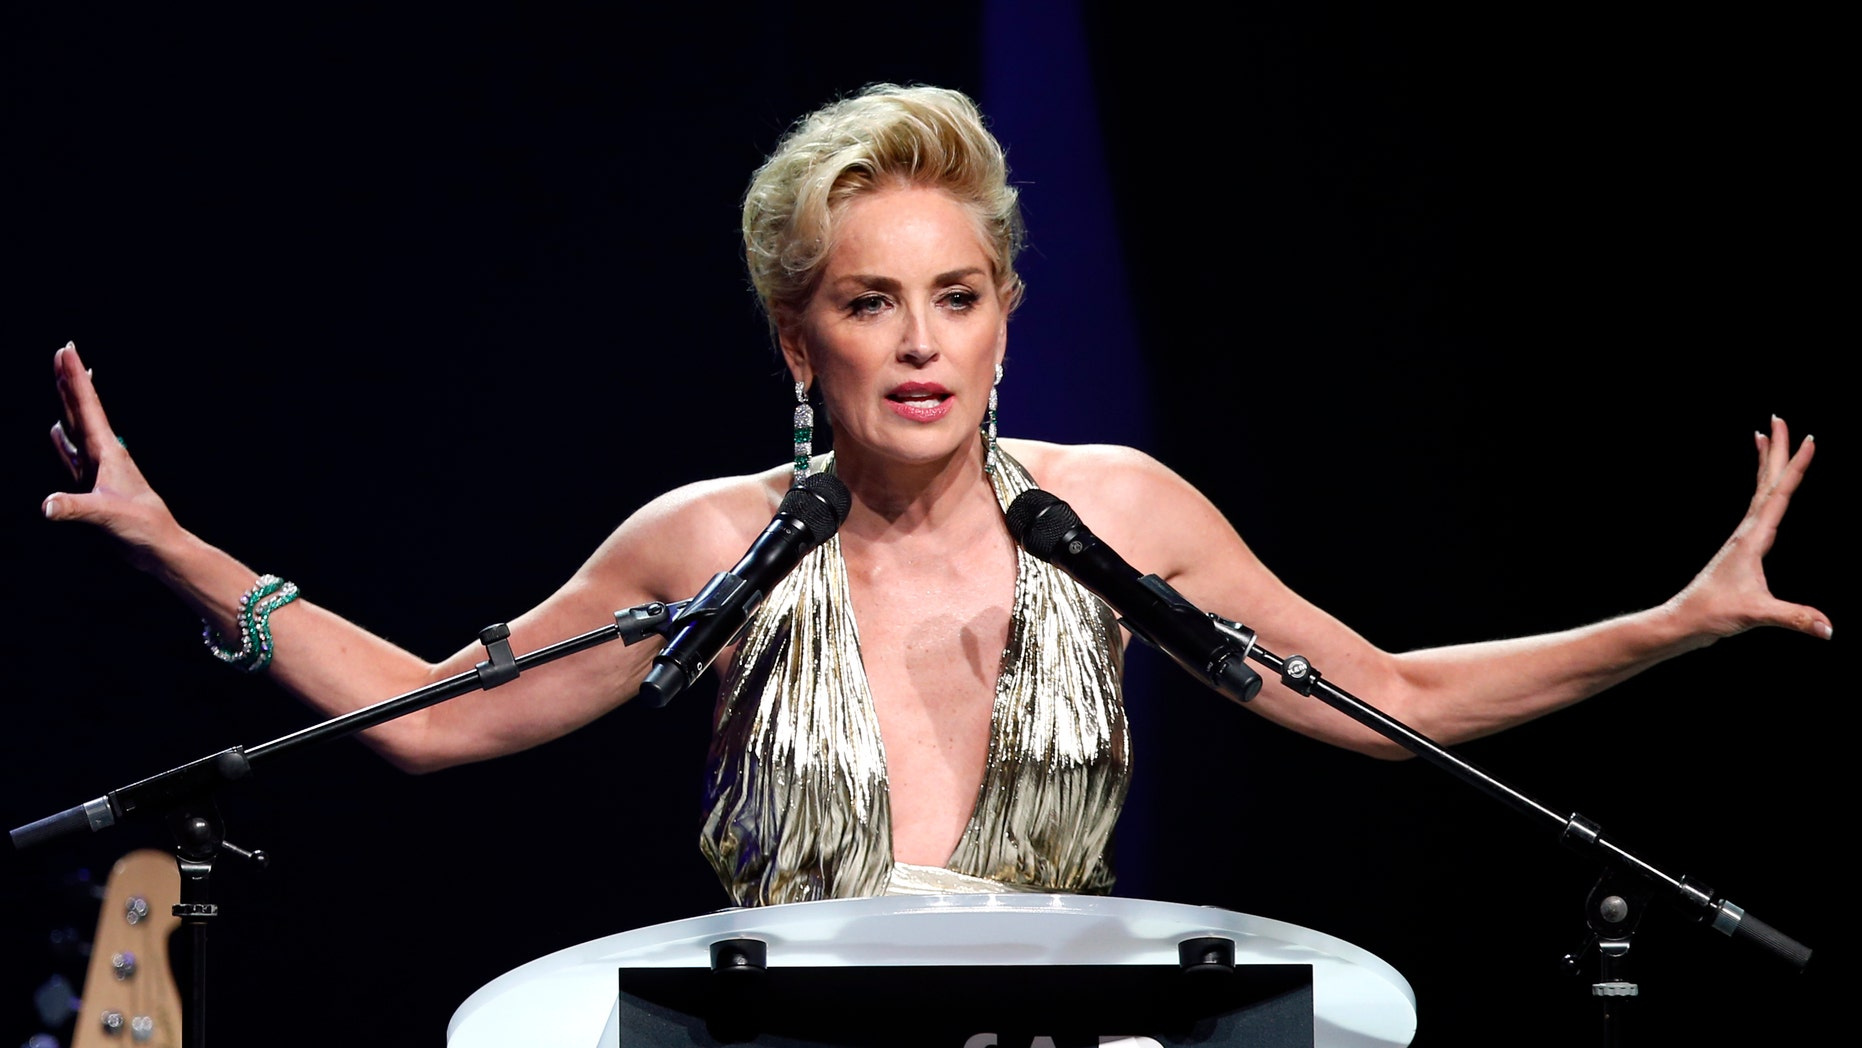 May 22, 2014. Sharon Stone attends an auction at the amfAR';s Cinema Against AIDS 2014 event in Antibes during the 67th Cannes Film Festival.